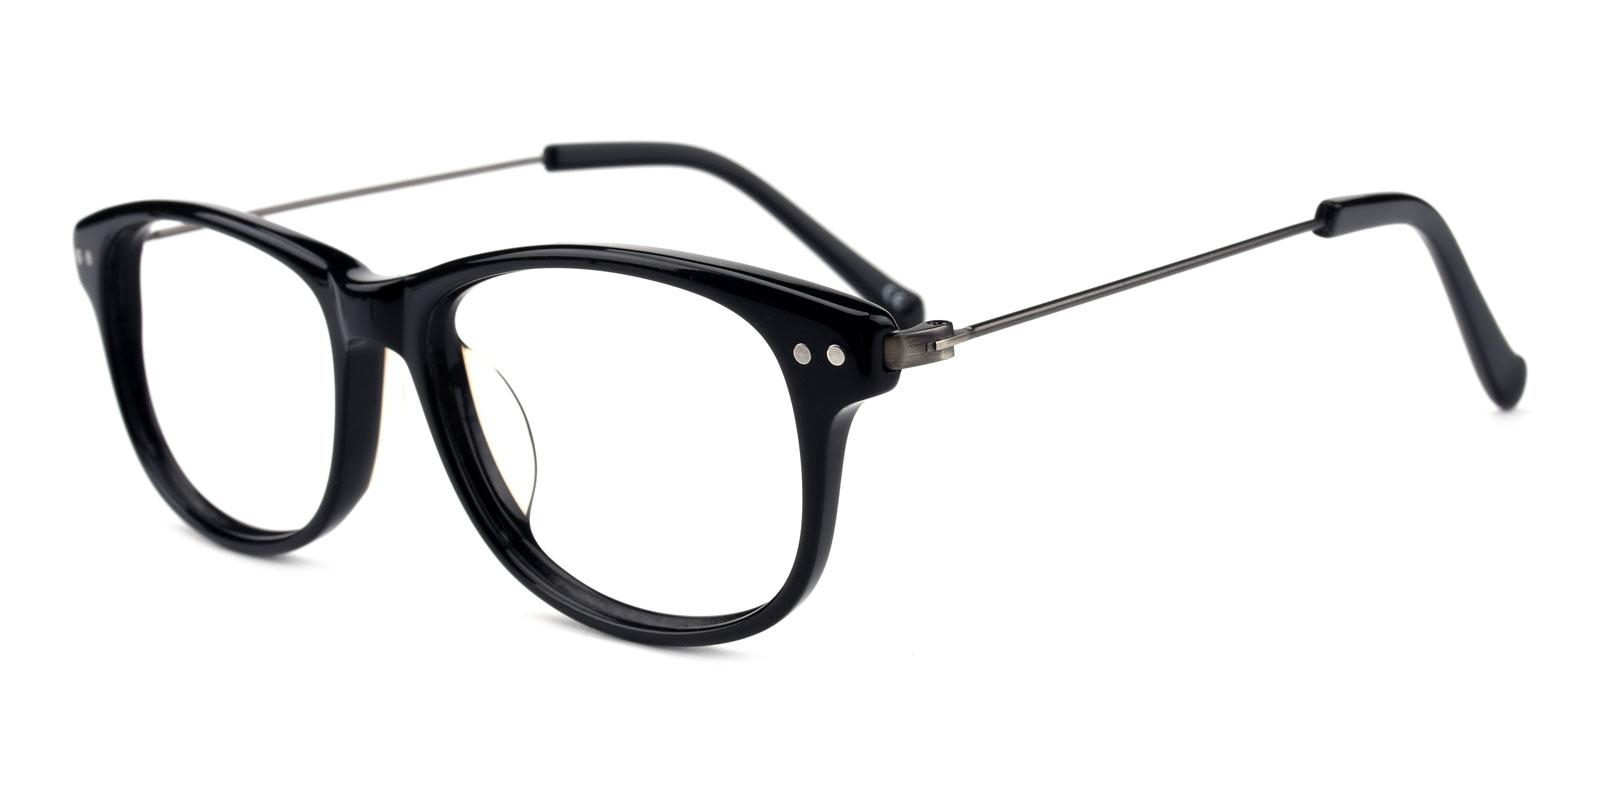 Gulmira-Black-Rectangle-Plastic-Eyeglasses-additional1